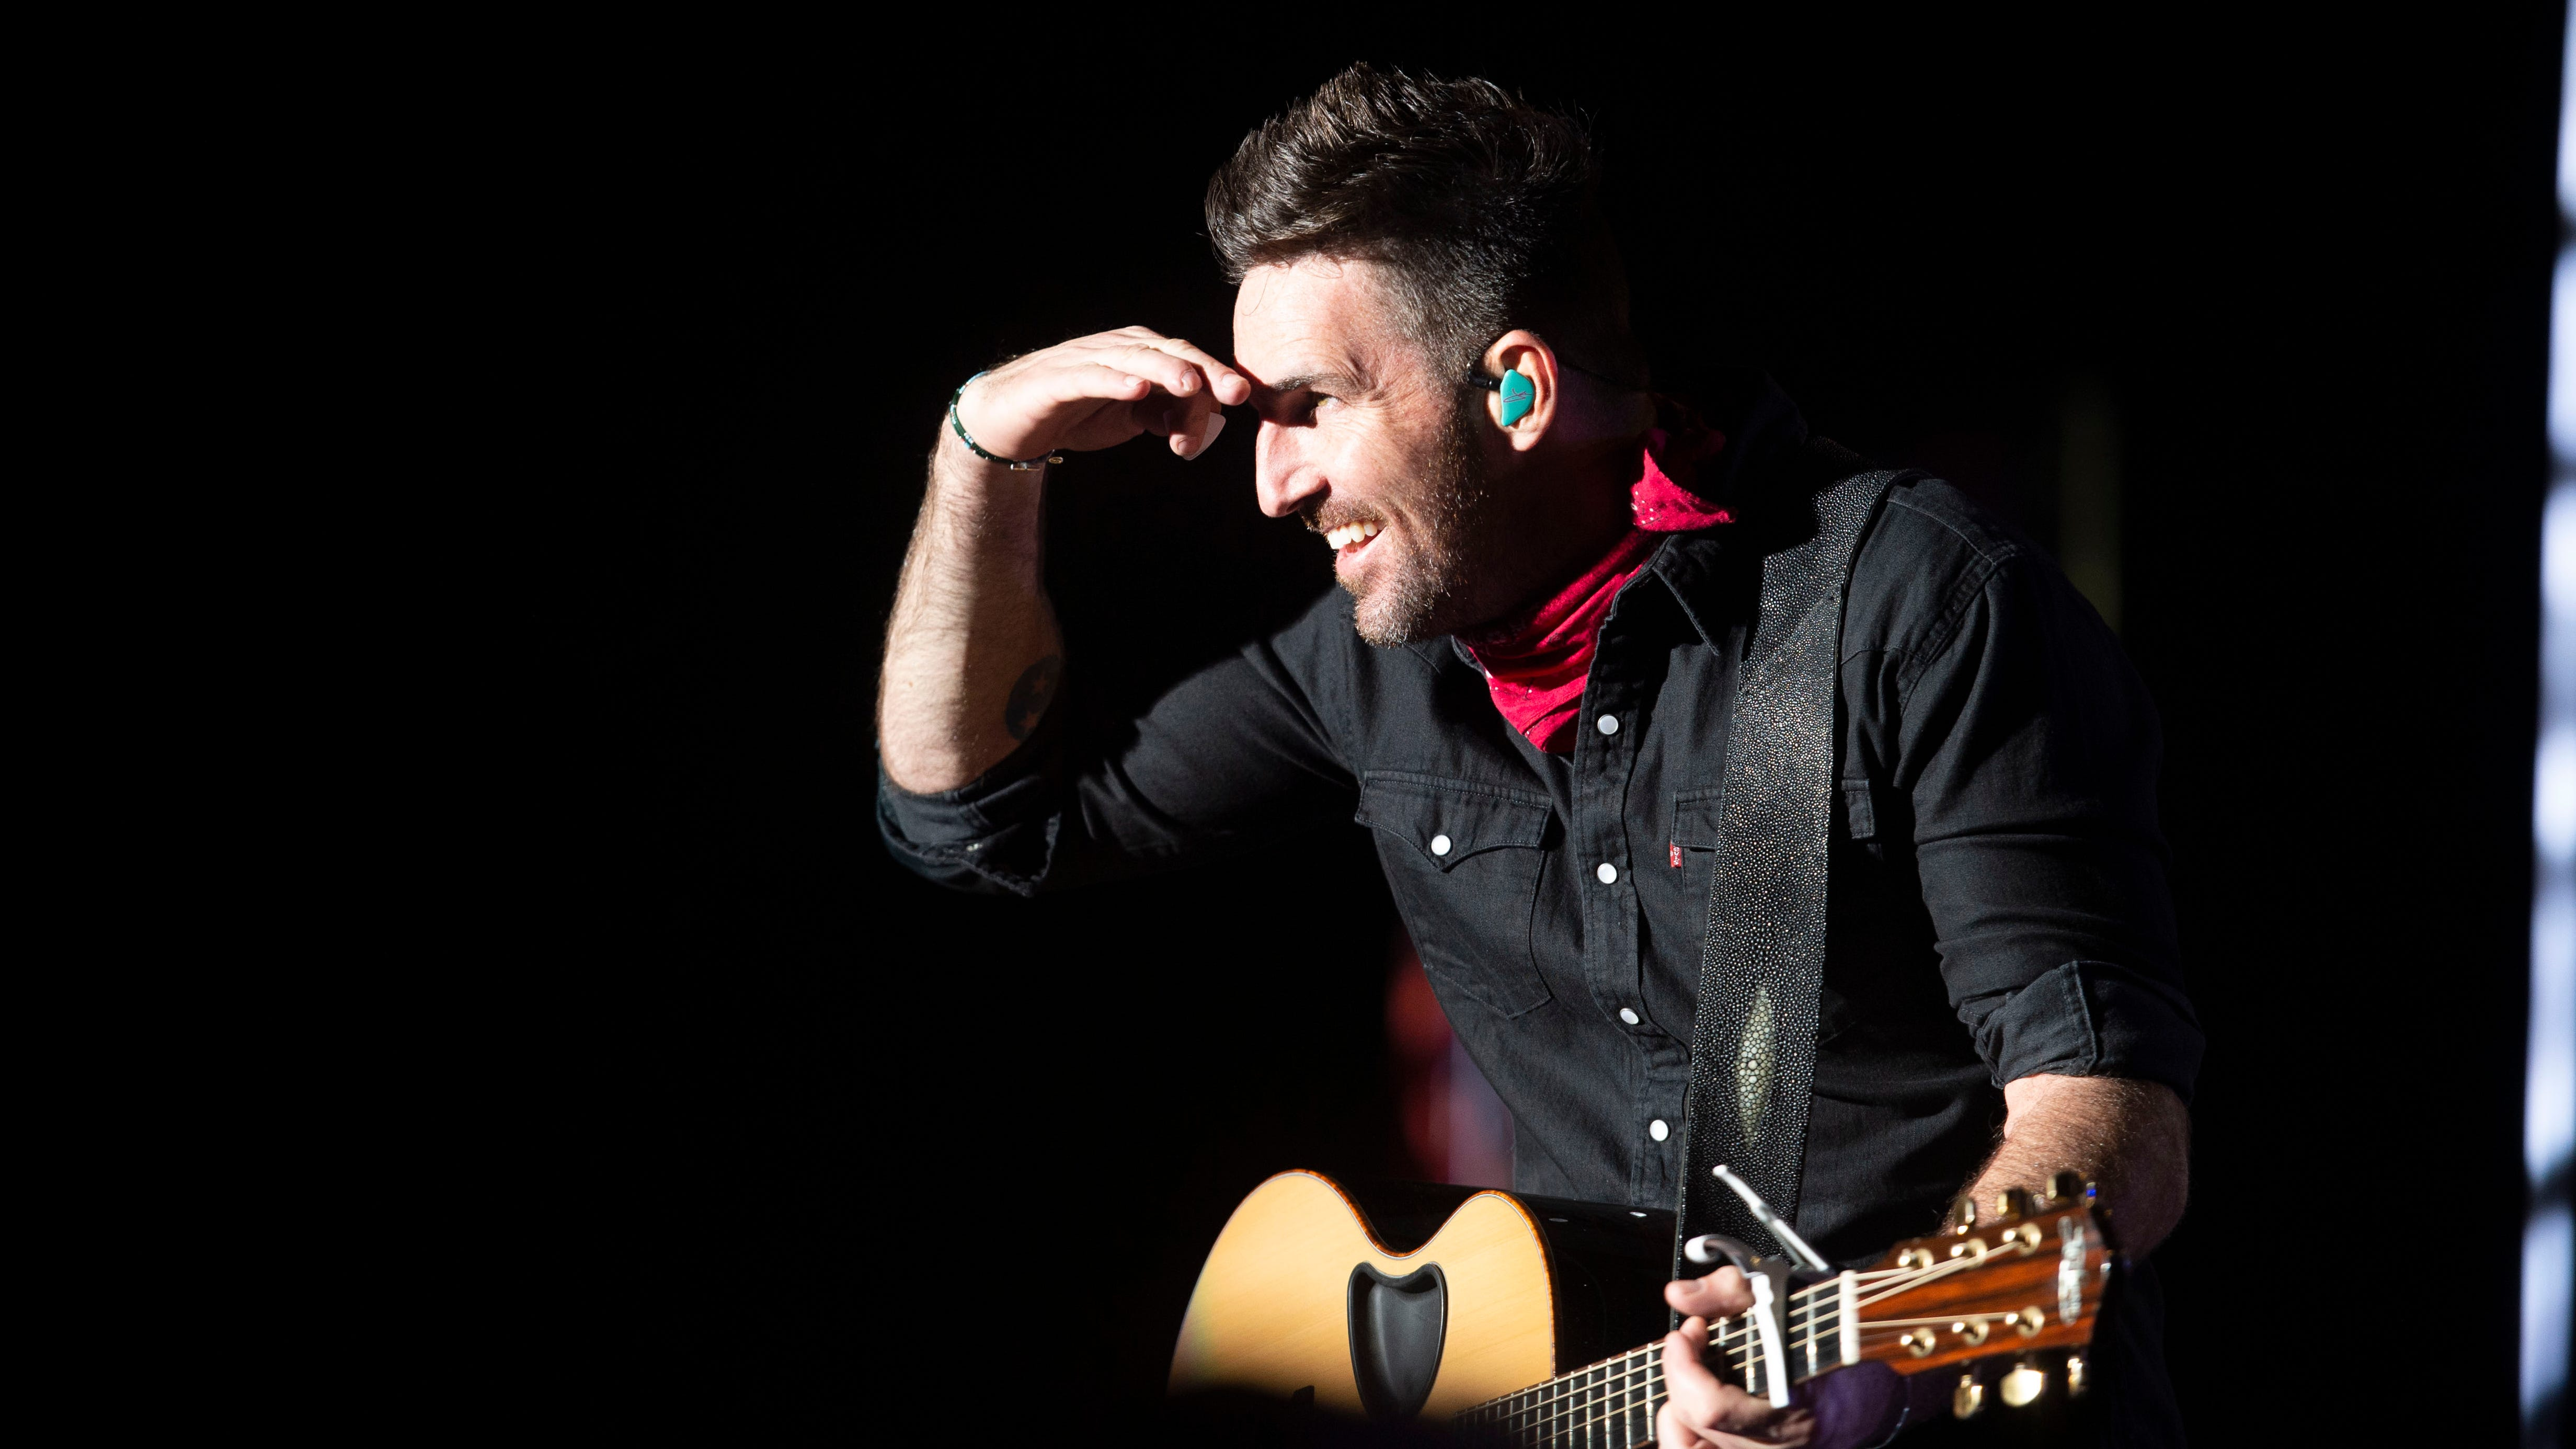 Country music star and Vero Beach native Jake Owen was joined by Joe Diffie, Chris Lane and Morgan Walden, for 12th annual Jake Owen Foundation Benefit Concert on Saturday, Dec. 8, 2018 at the Indian River County Fairgrounds.